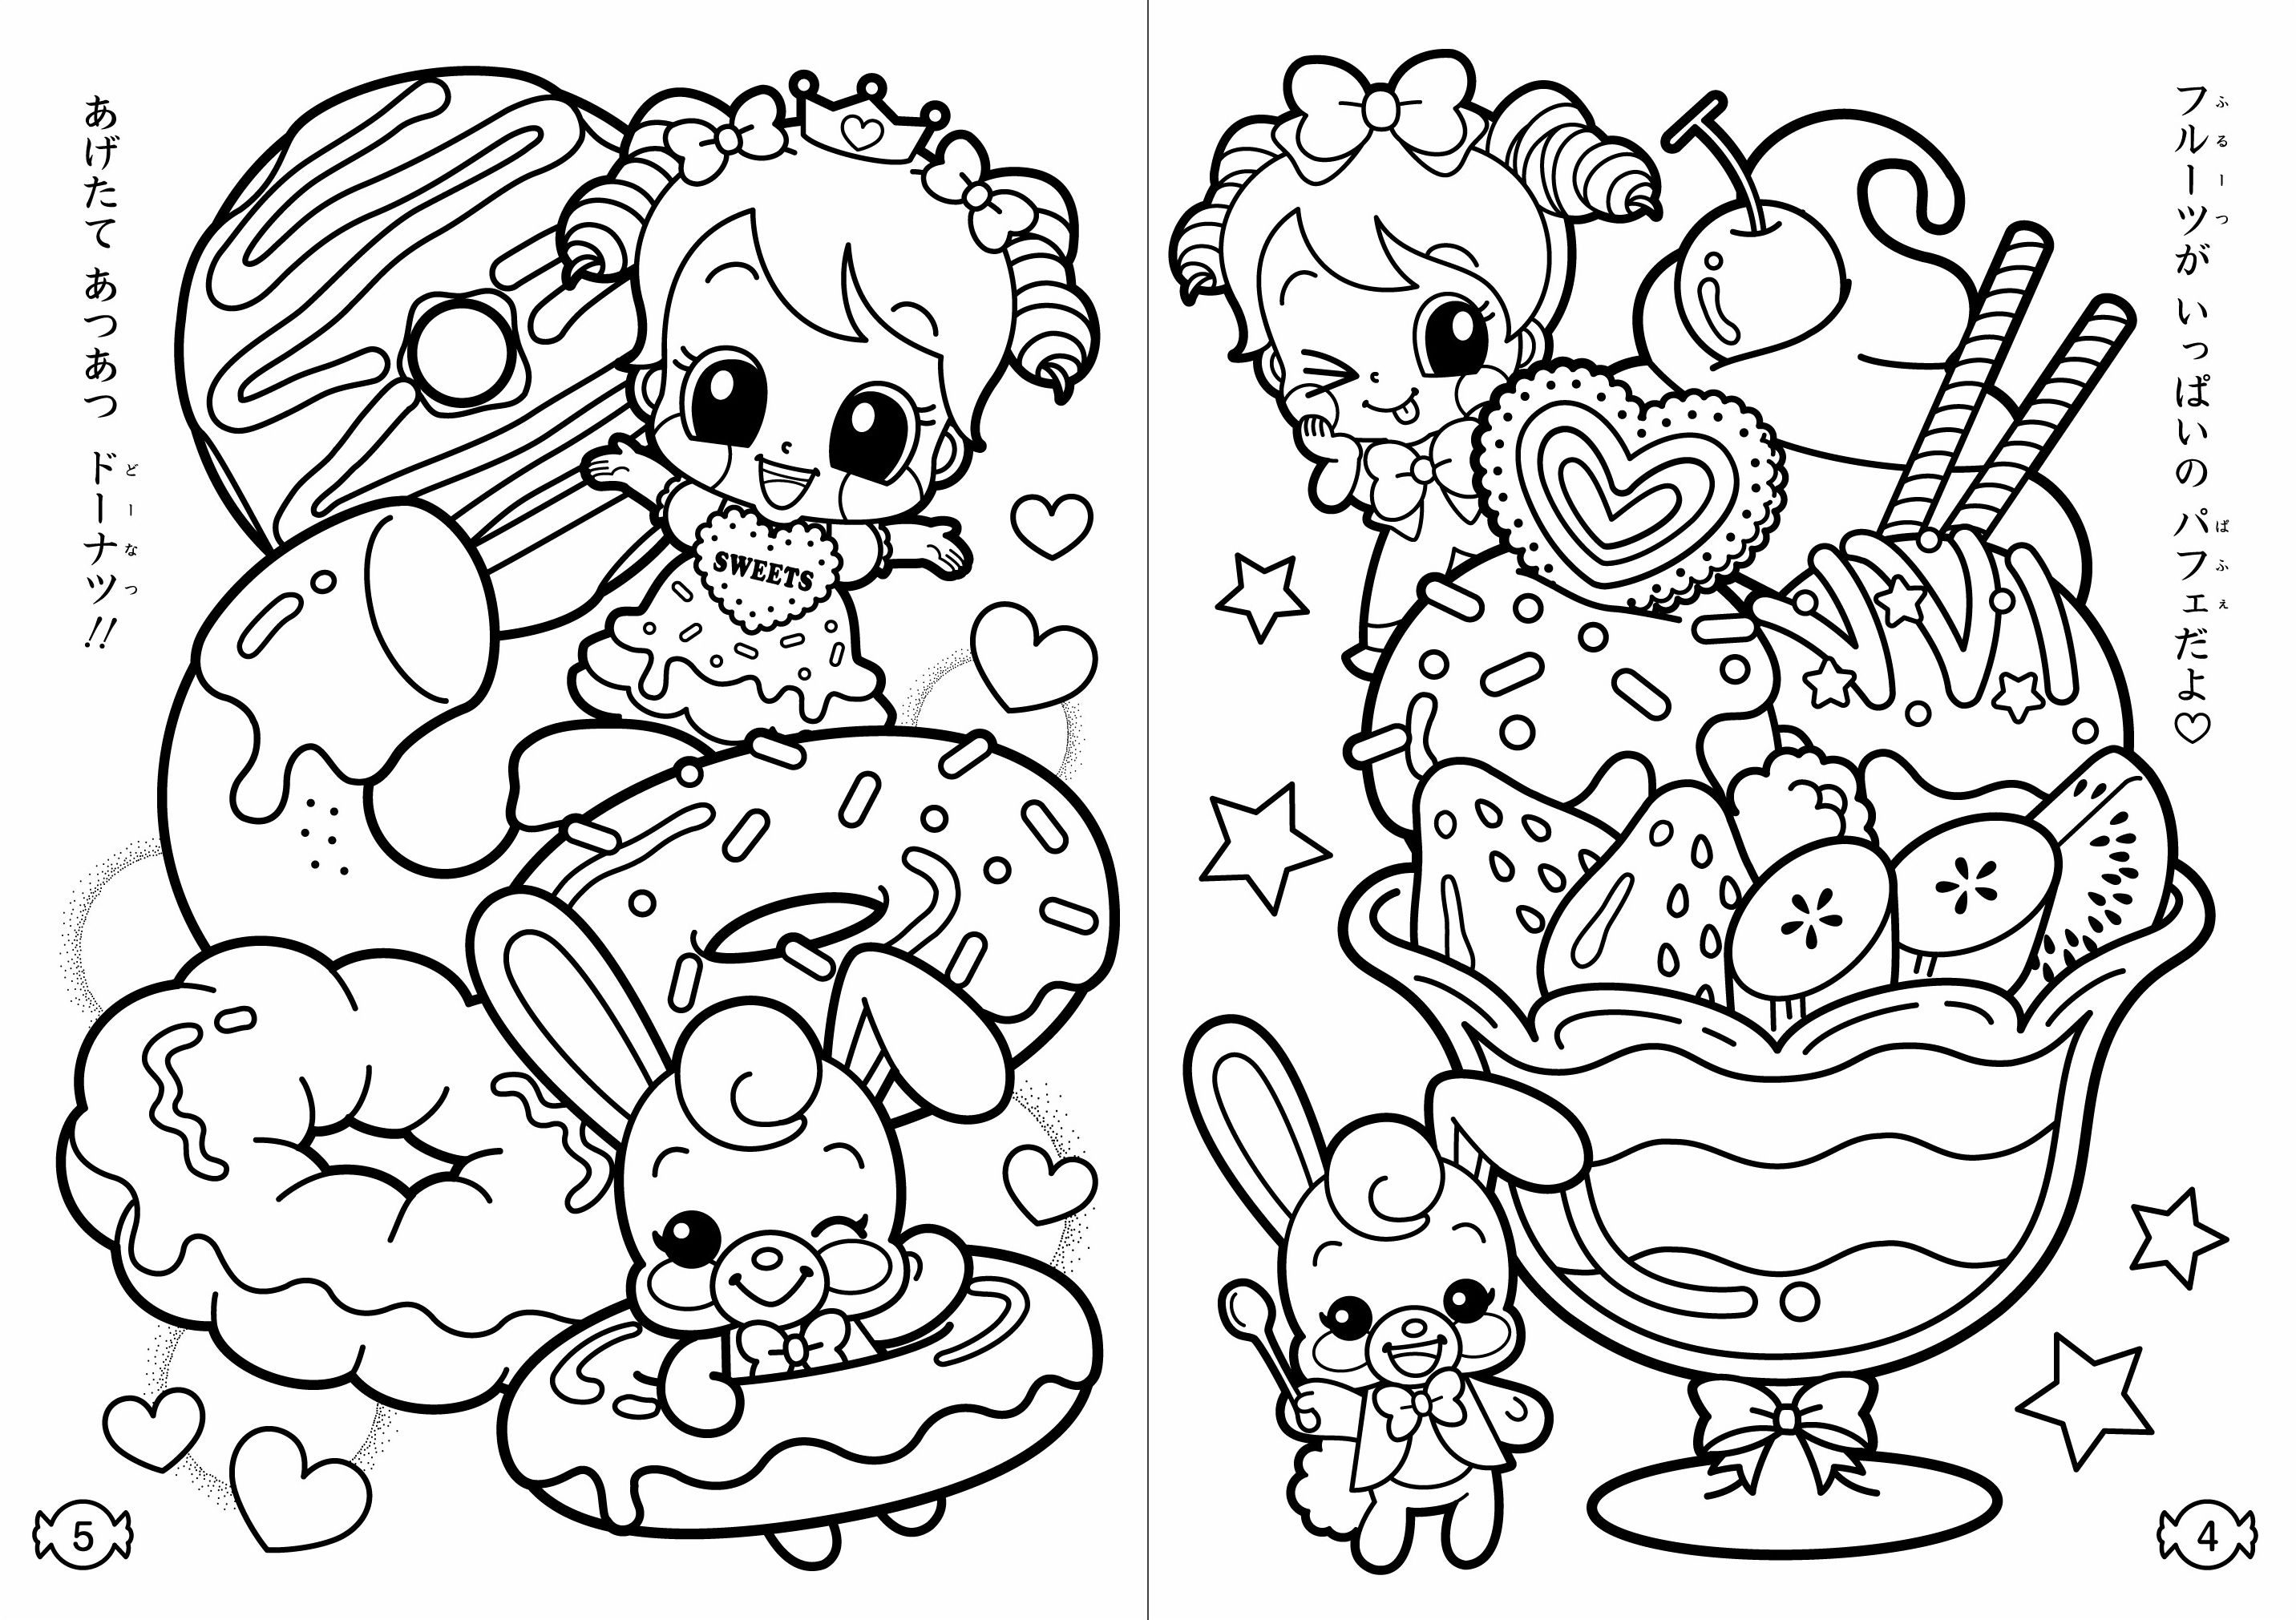 poko coloring pages - photo#30